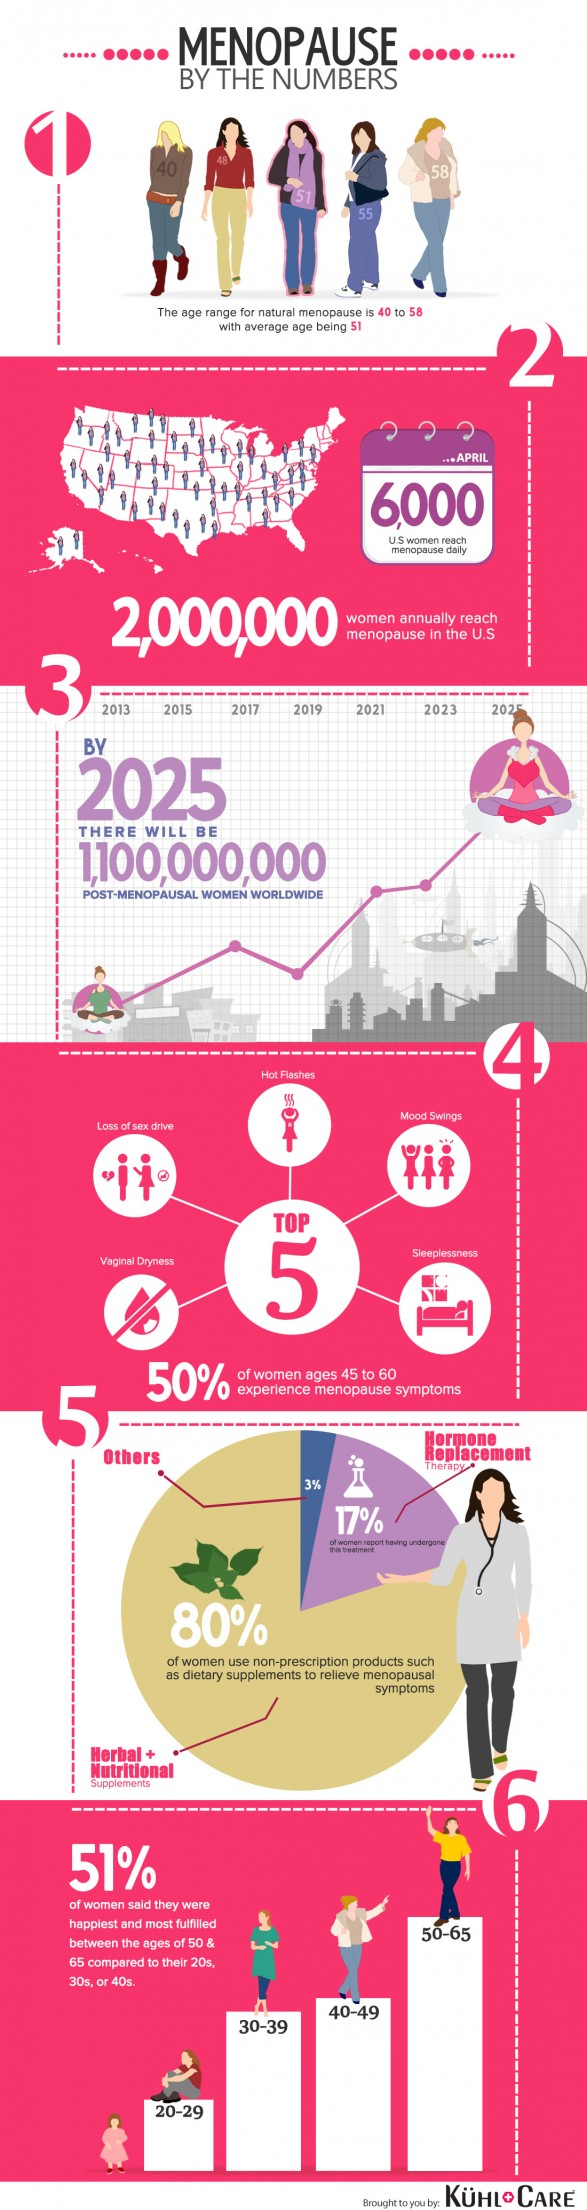 Menopause By The Numbers